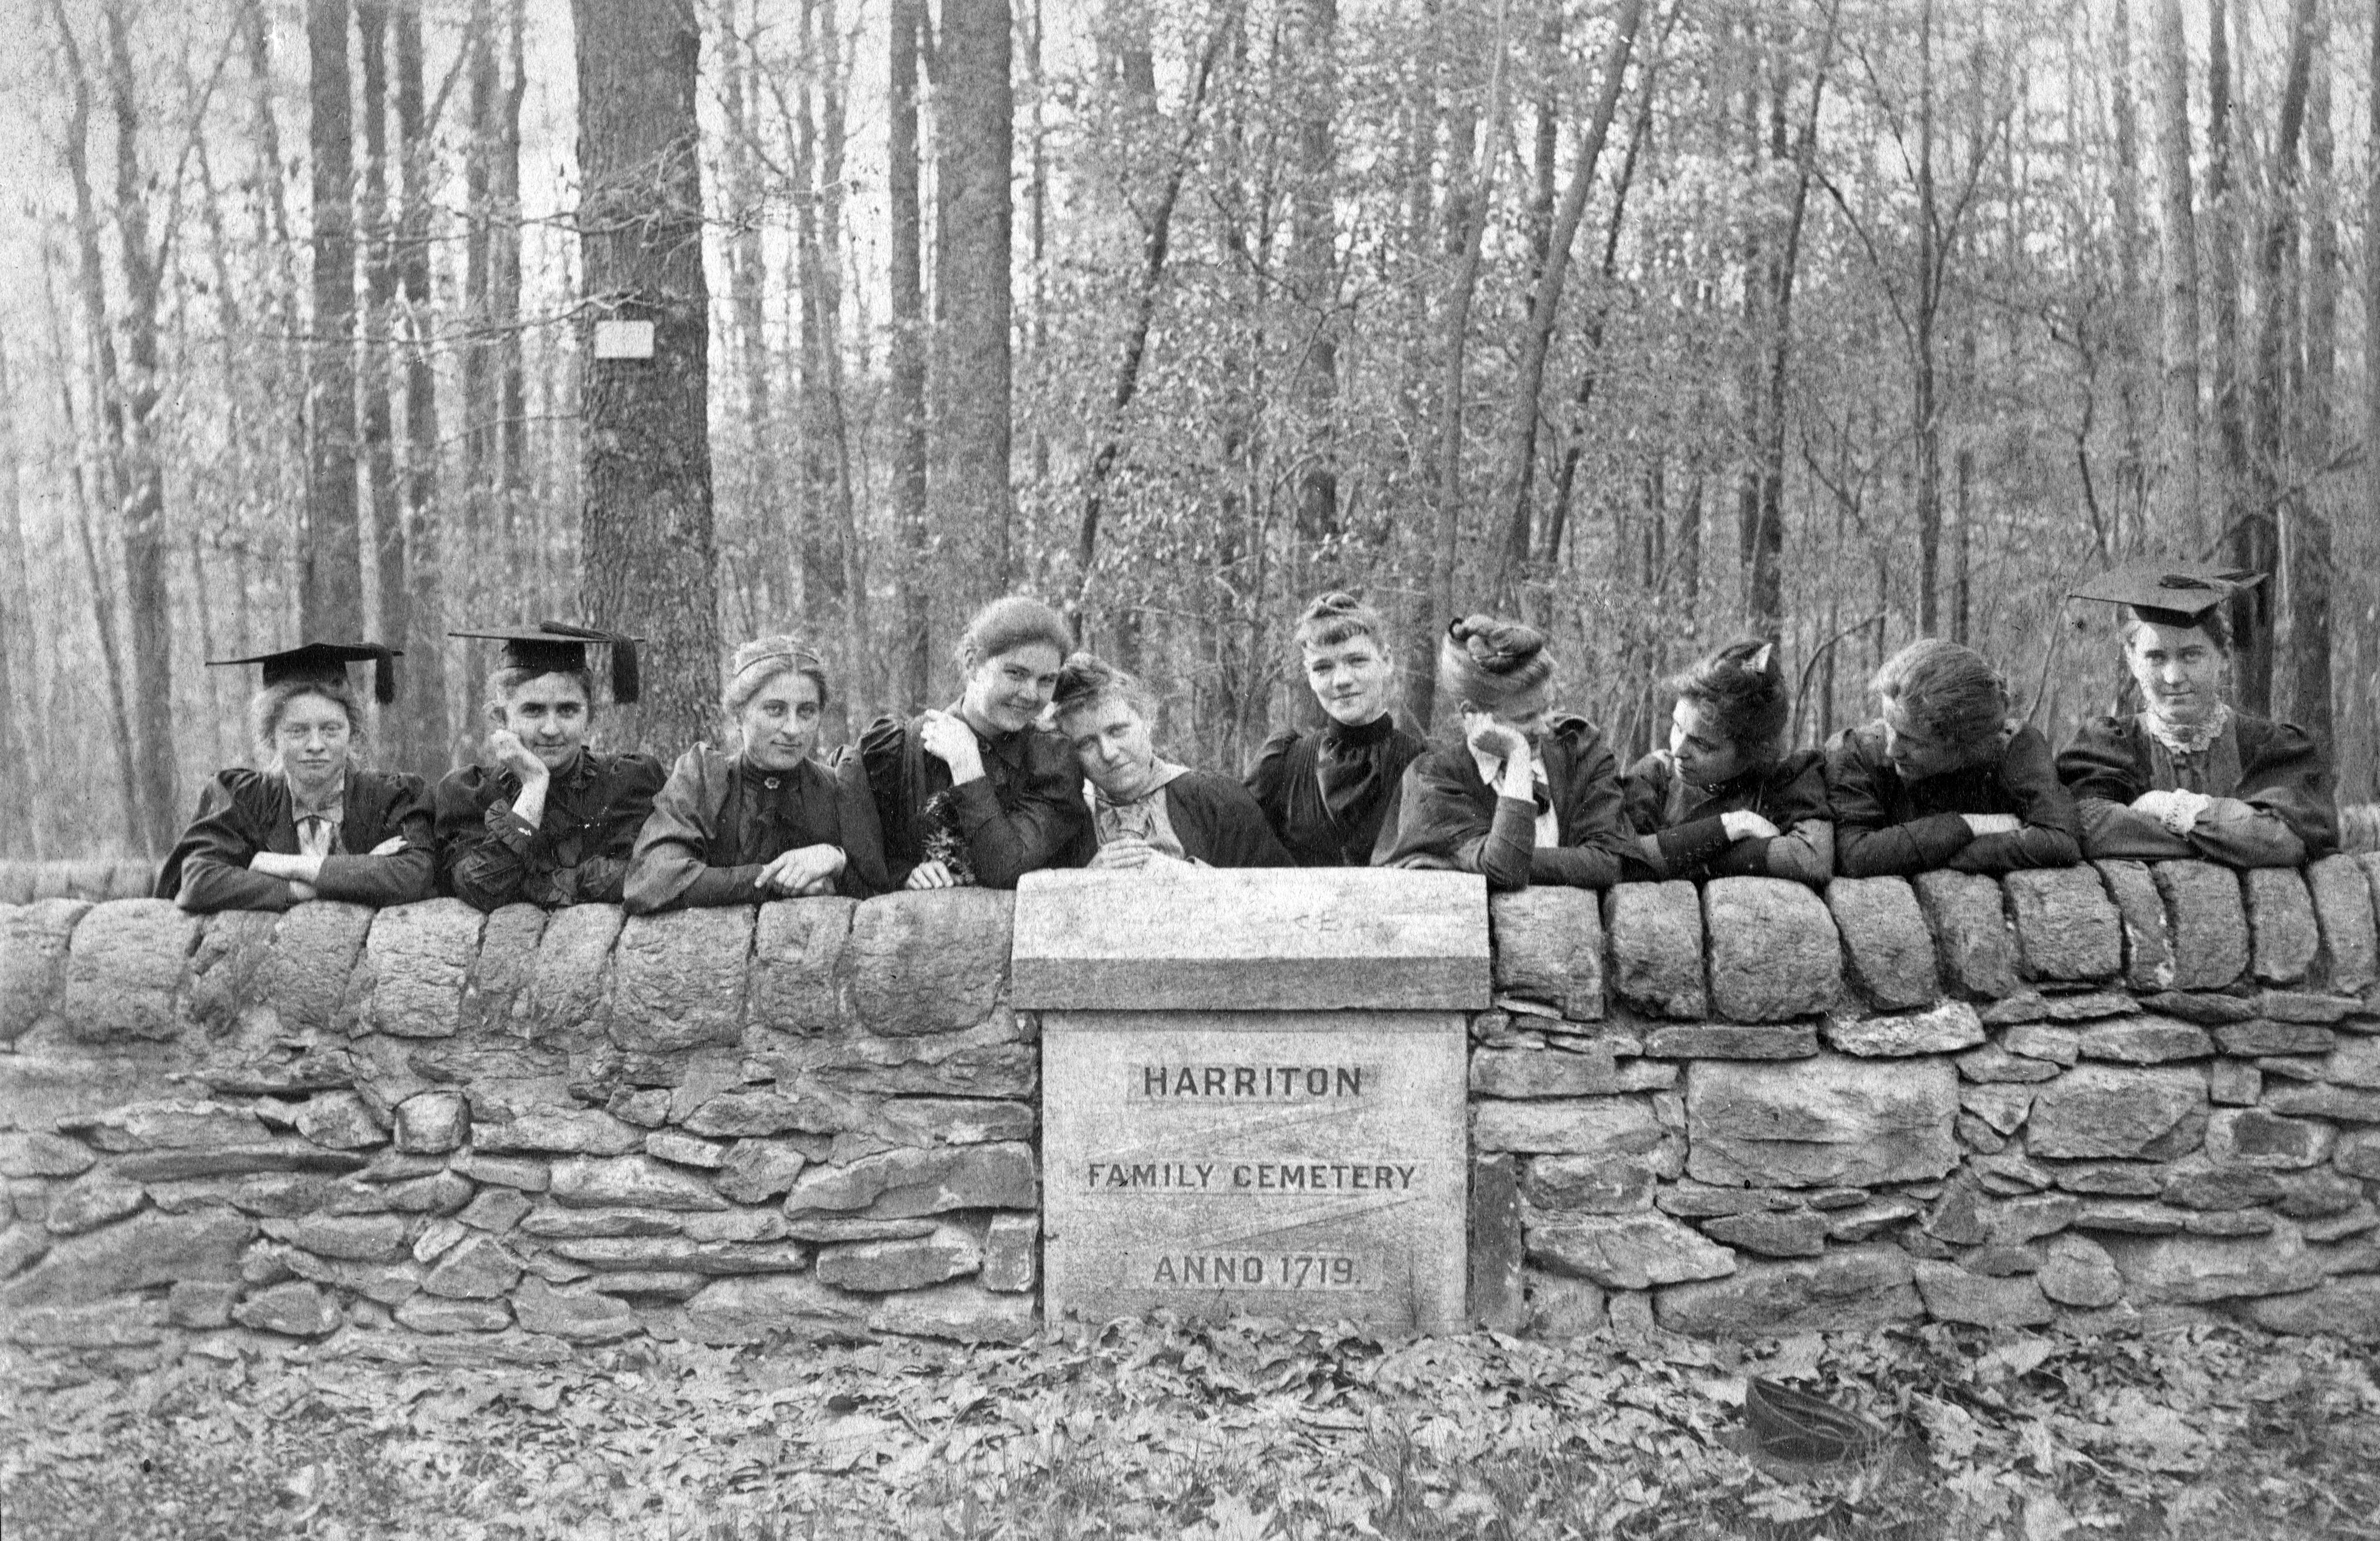 Black and white photo of women posing behind a low wall for a family cemetery plot.